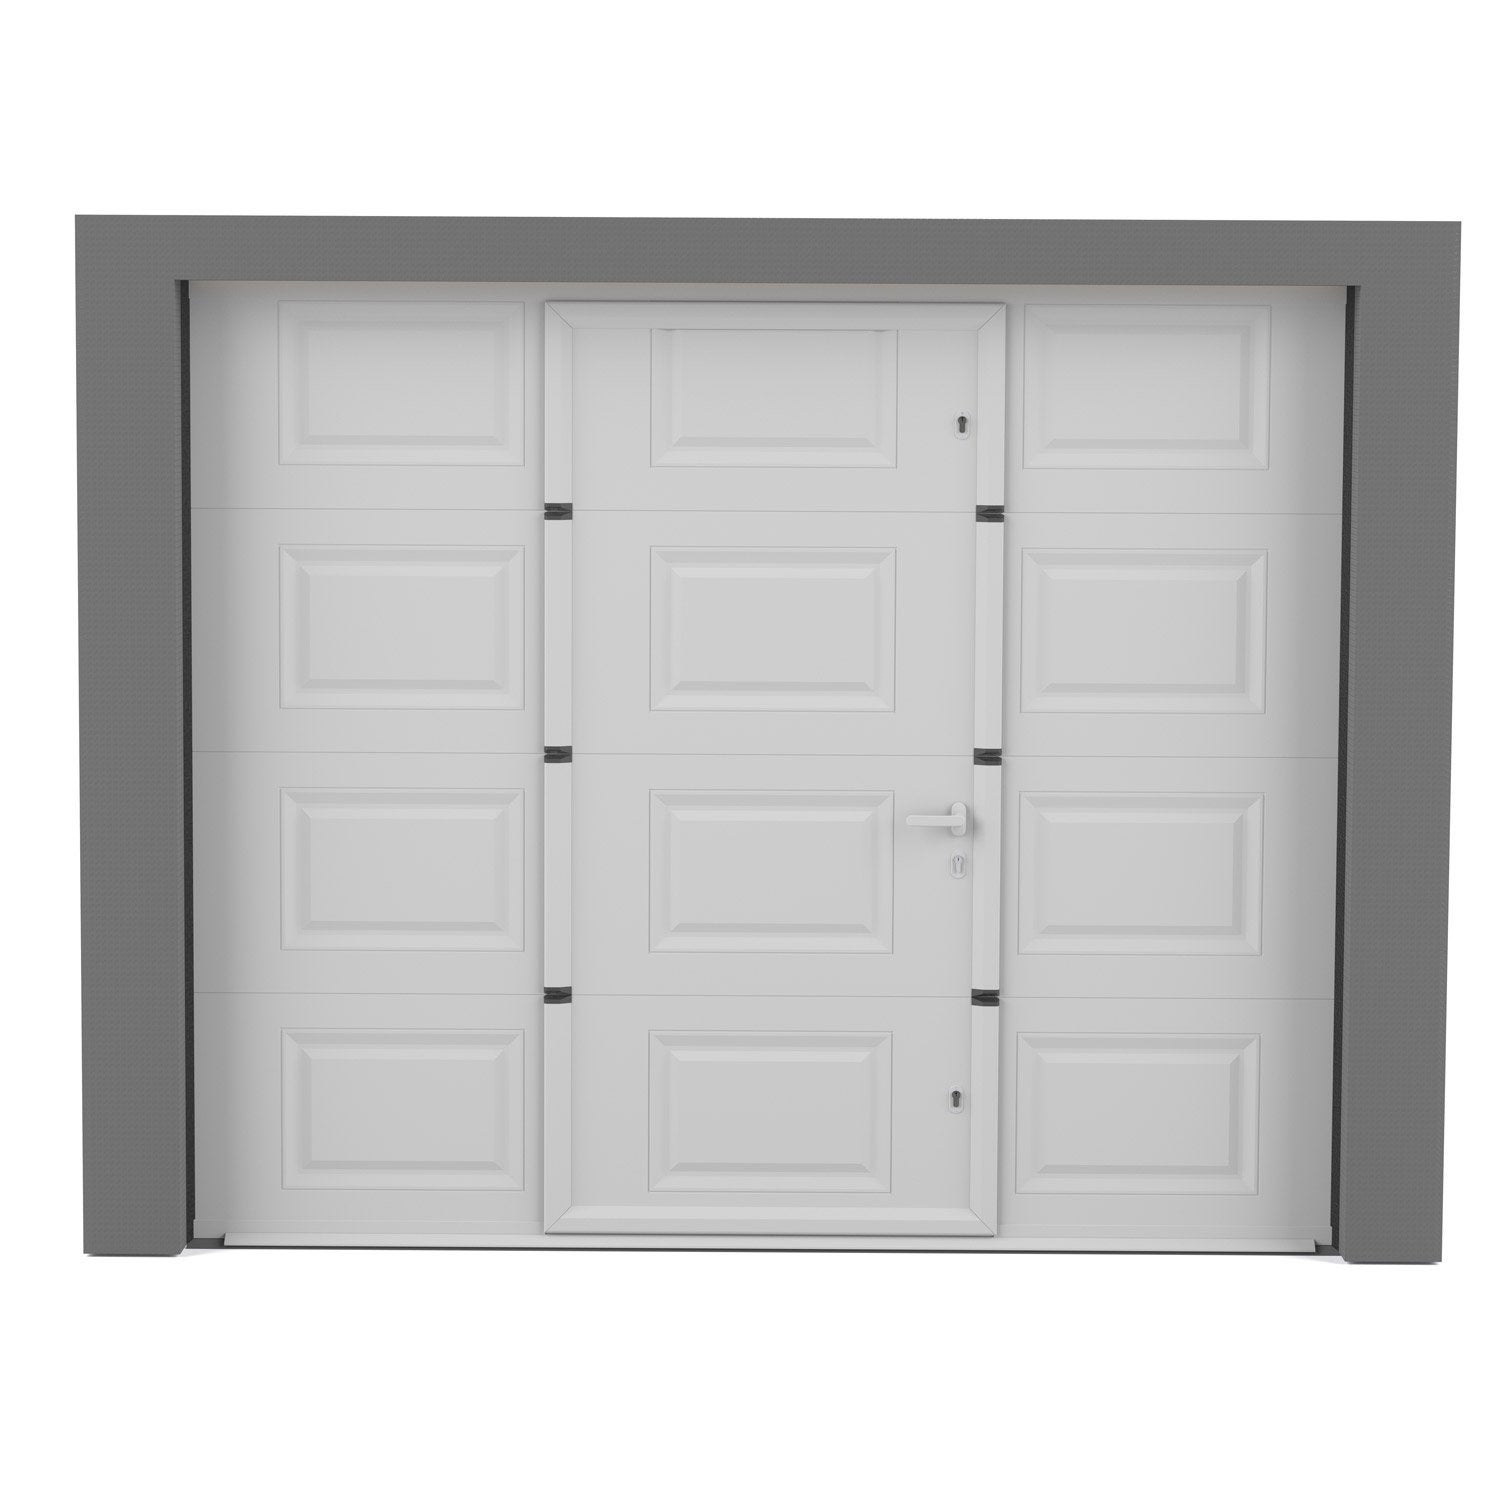 Porte de garage sectionnelle motoris e artens essentiel x cm le - Leroy merlin porte garage sectionnelle ...